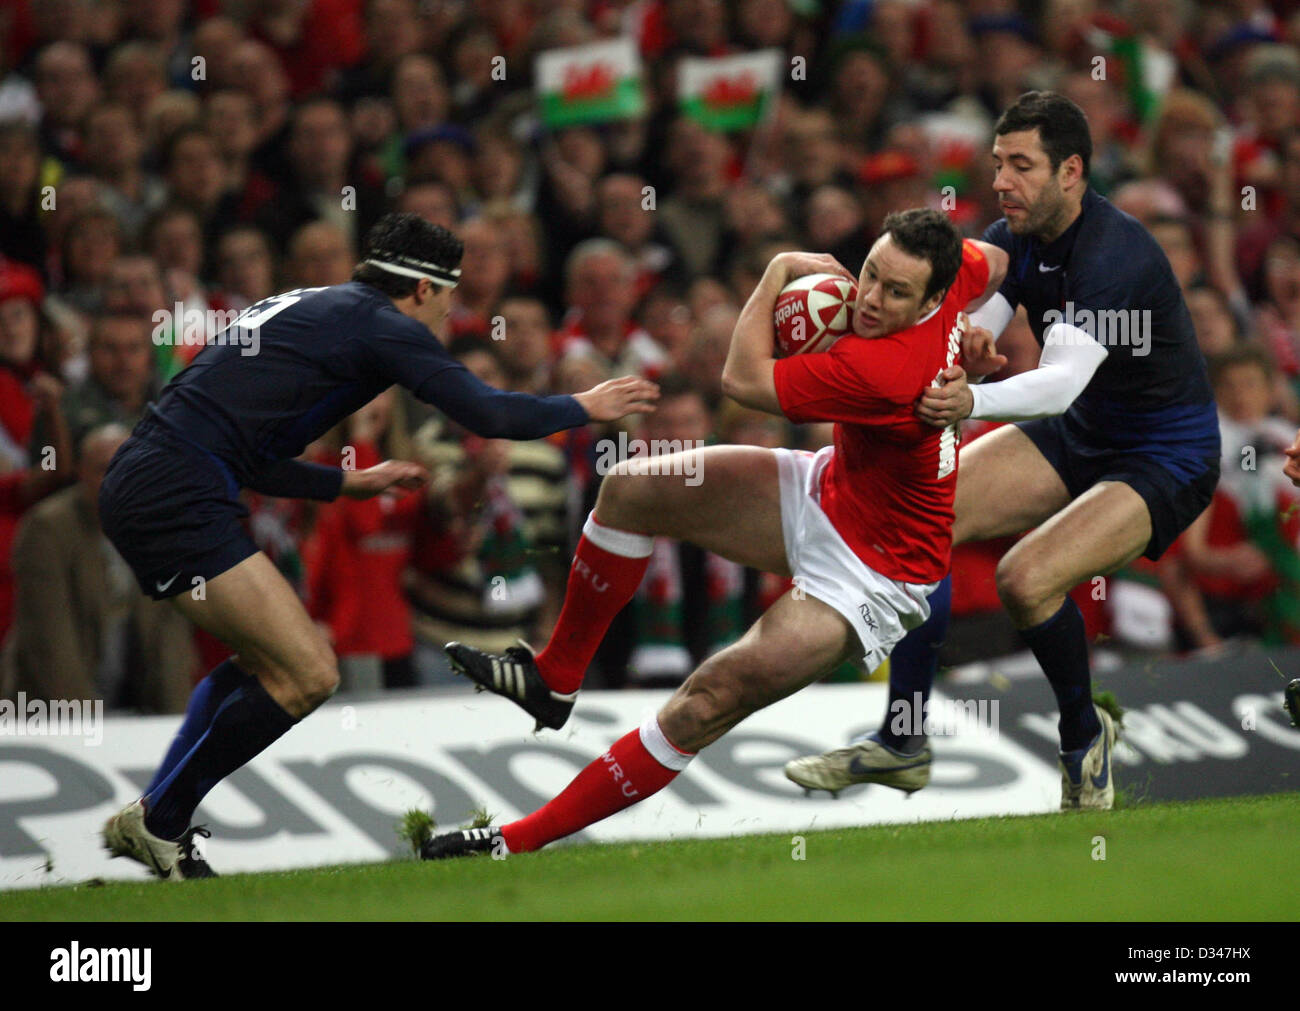 15.03.08. Wales v France. Wales' Mark Jones gets caught by Anthony Floch (left) and Julien Malzieu (rt) - Stock Image